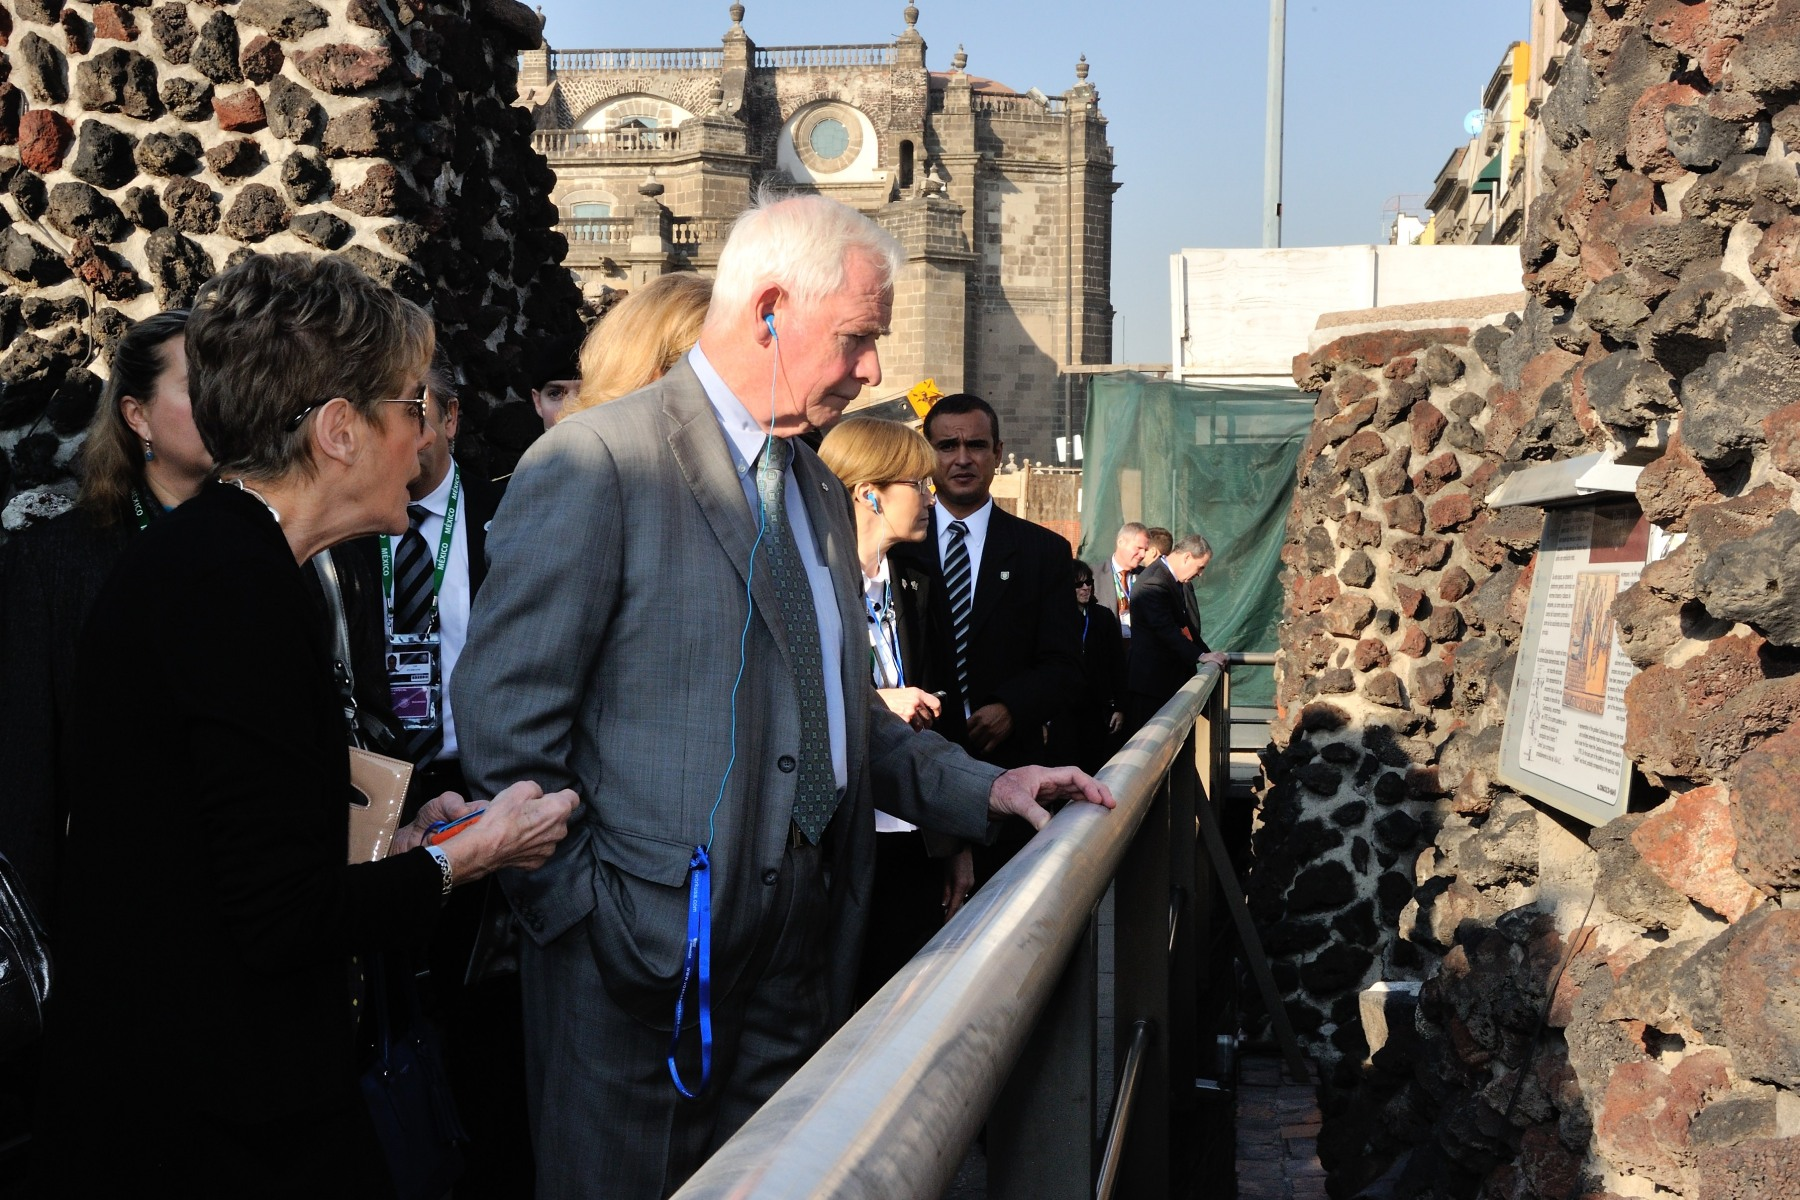 The group also visited the ruins of the Templo Mayor, the main sacred precinct of the Aztec settlement of Tenochtitlan (now called Mexico City) that was demolished by the Spaniards in 1519.